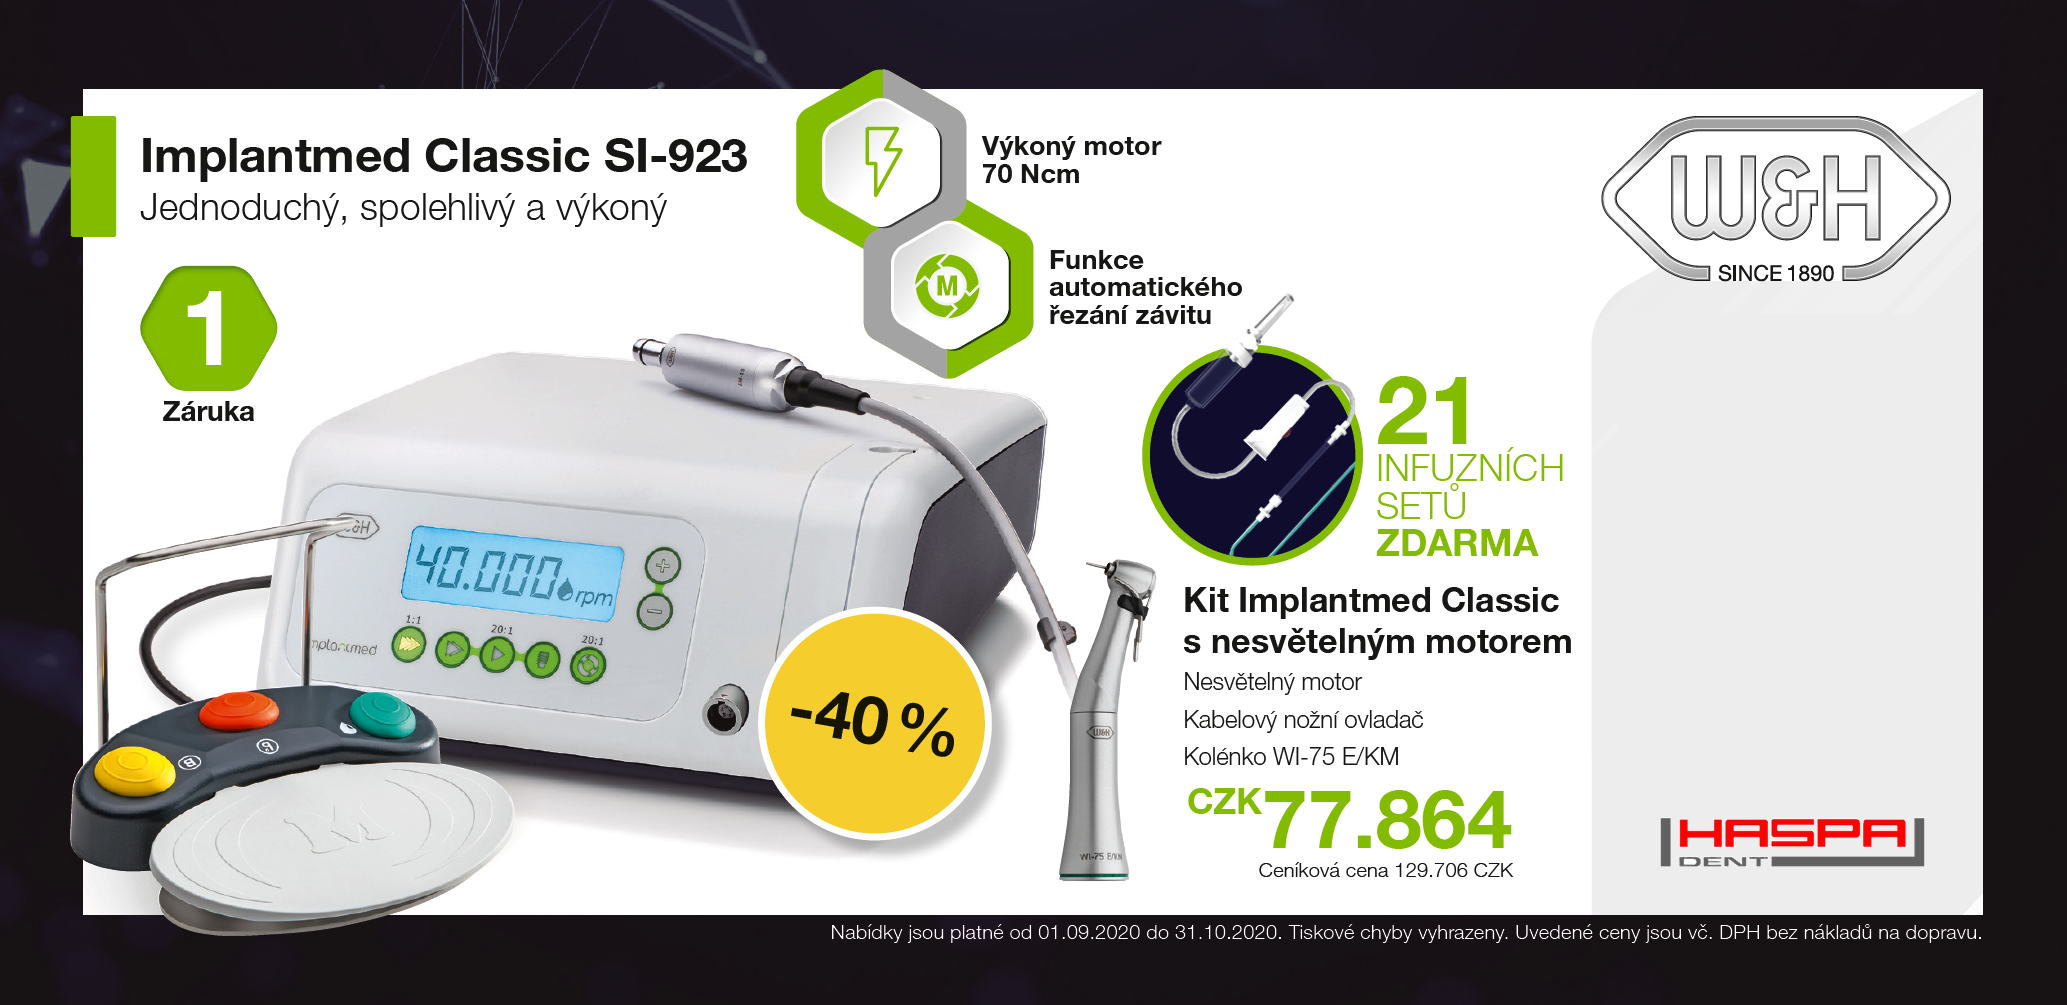 Implantmed Classic SI-923